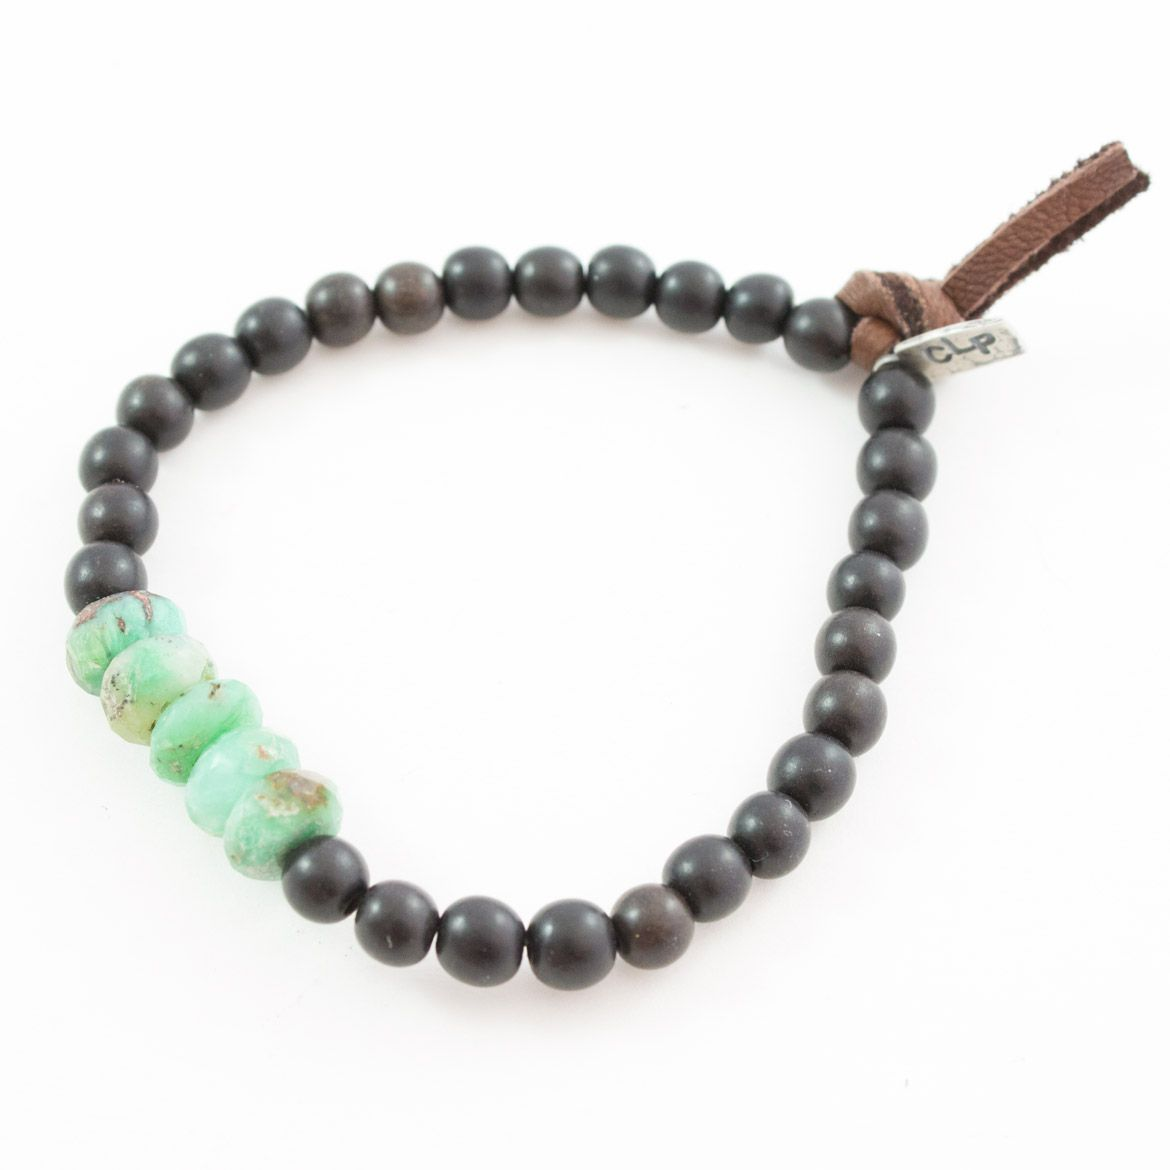 Wood Bead with Stone Accent Bracelet